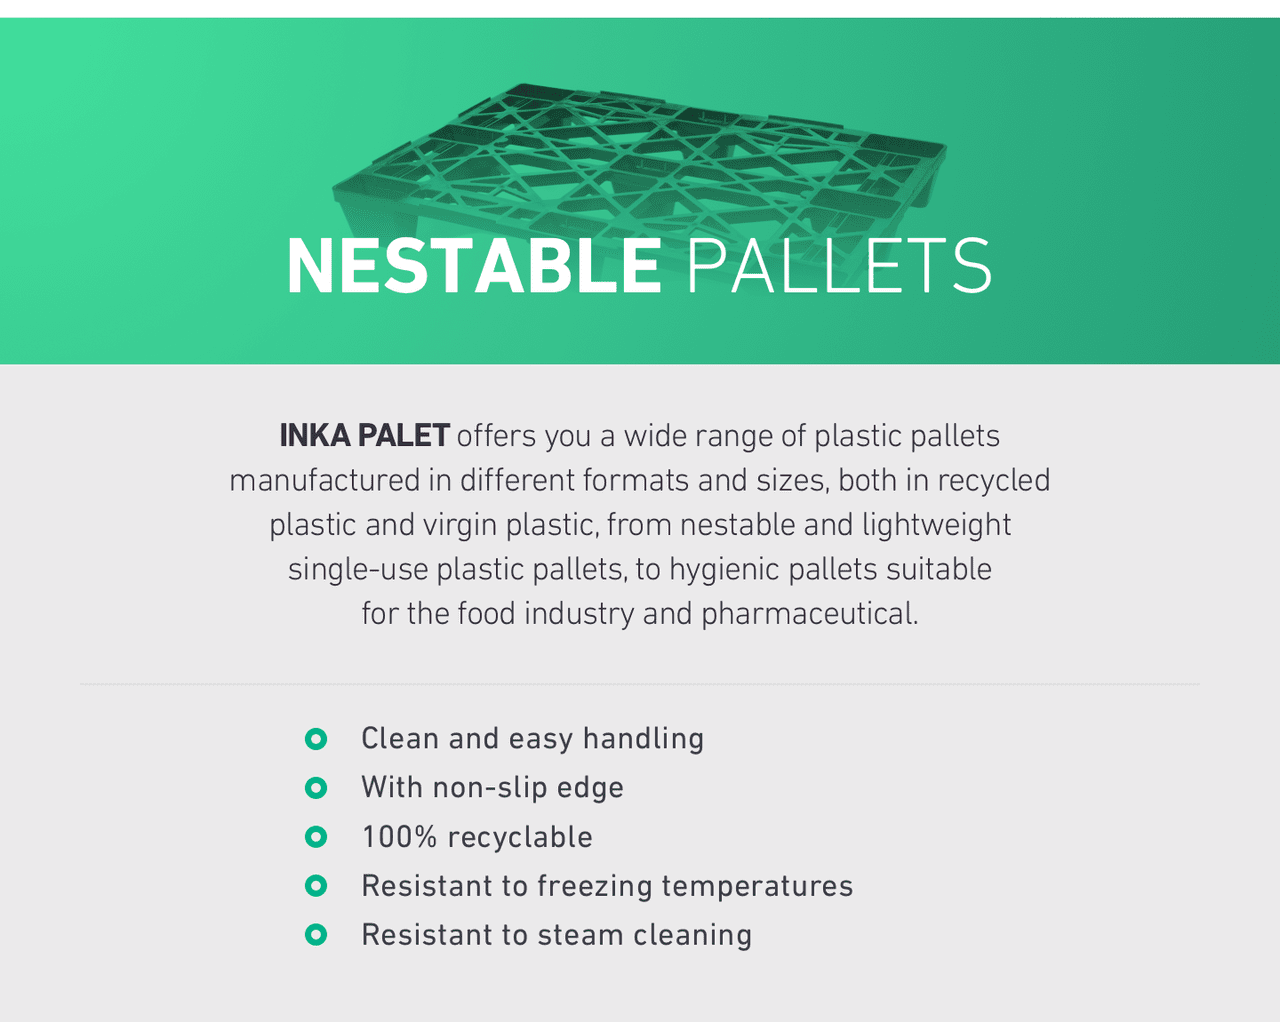 NESTABLE PALLETS. INKA PALET offers you a wide range of plastic pallets manufactured in different formats and sizes, both in recycled plastic and virgin plastic, from nestable and lightweight single-use plastic pallets, to hygienic pallets suitable for the food industry and pharmaceutical.